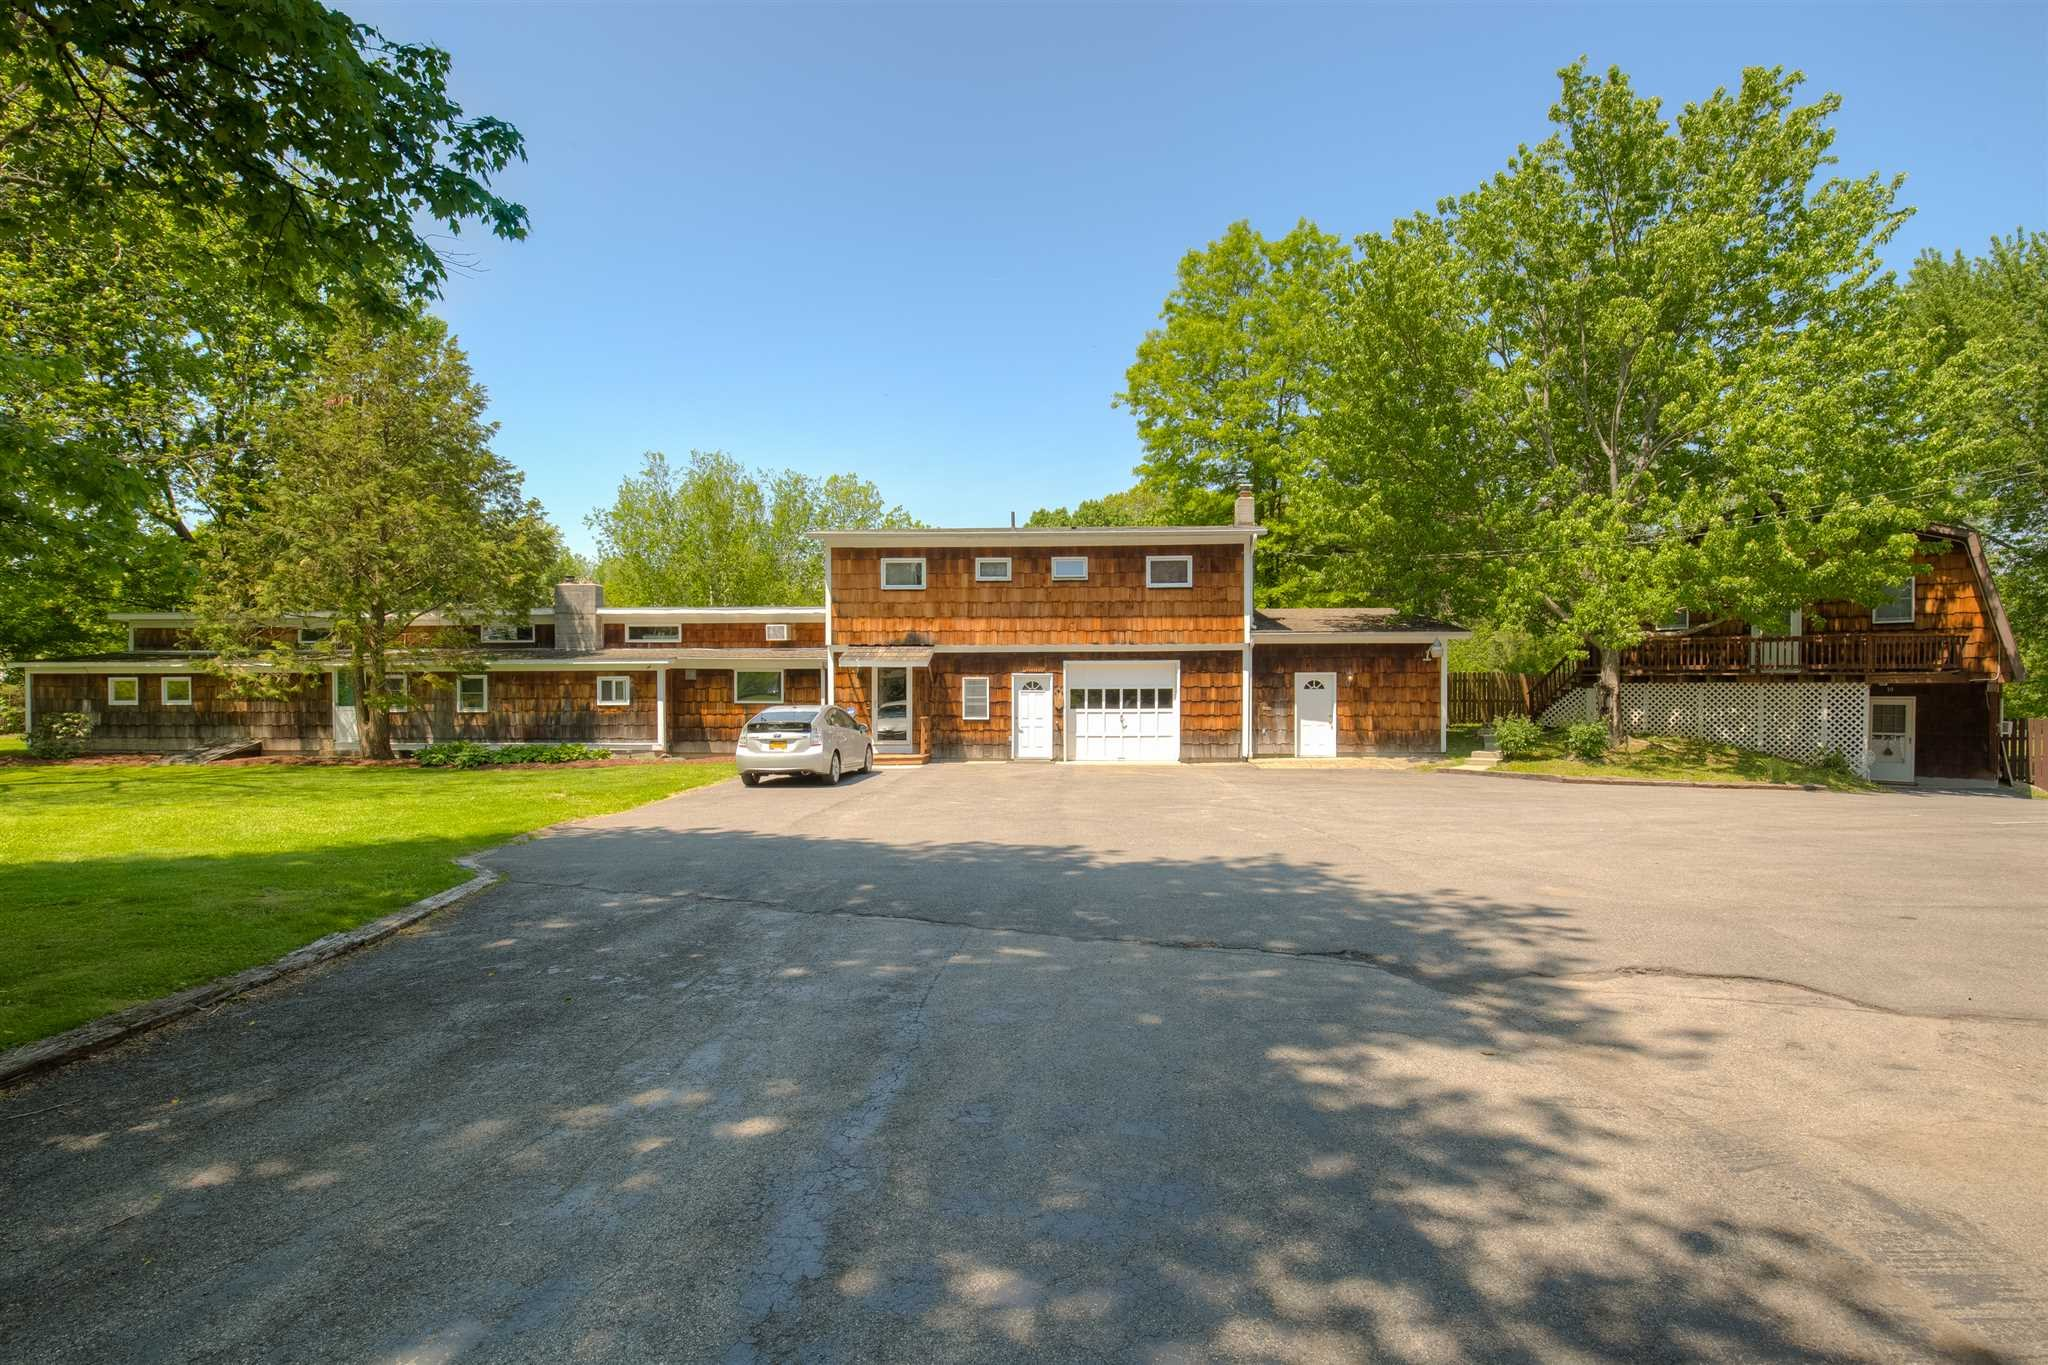 Single Family Home for Sale at 1429 ROUTE 9 Clermont, New York 12583 United States